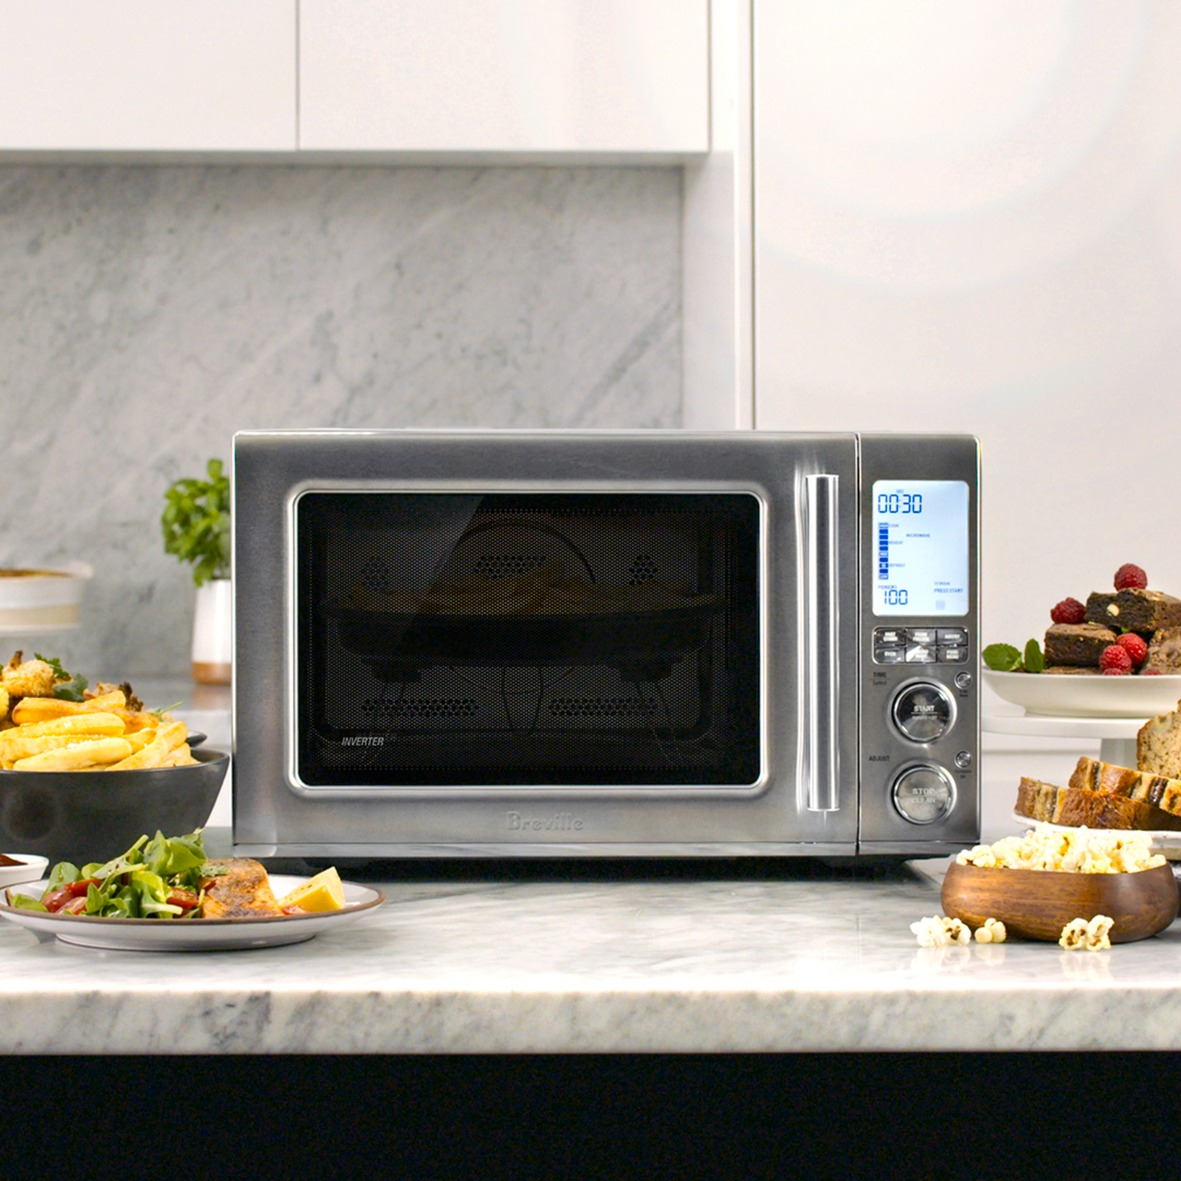 #ad Yes, I want to #WaveHello to the Breville Combi Wave 3-in-1 Microwave @BestBuy @Breville #CombiWave